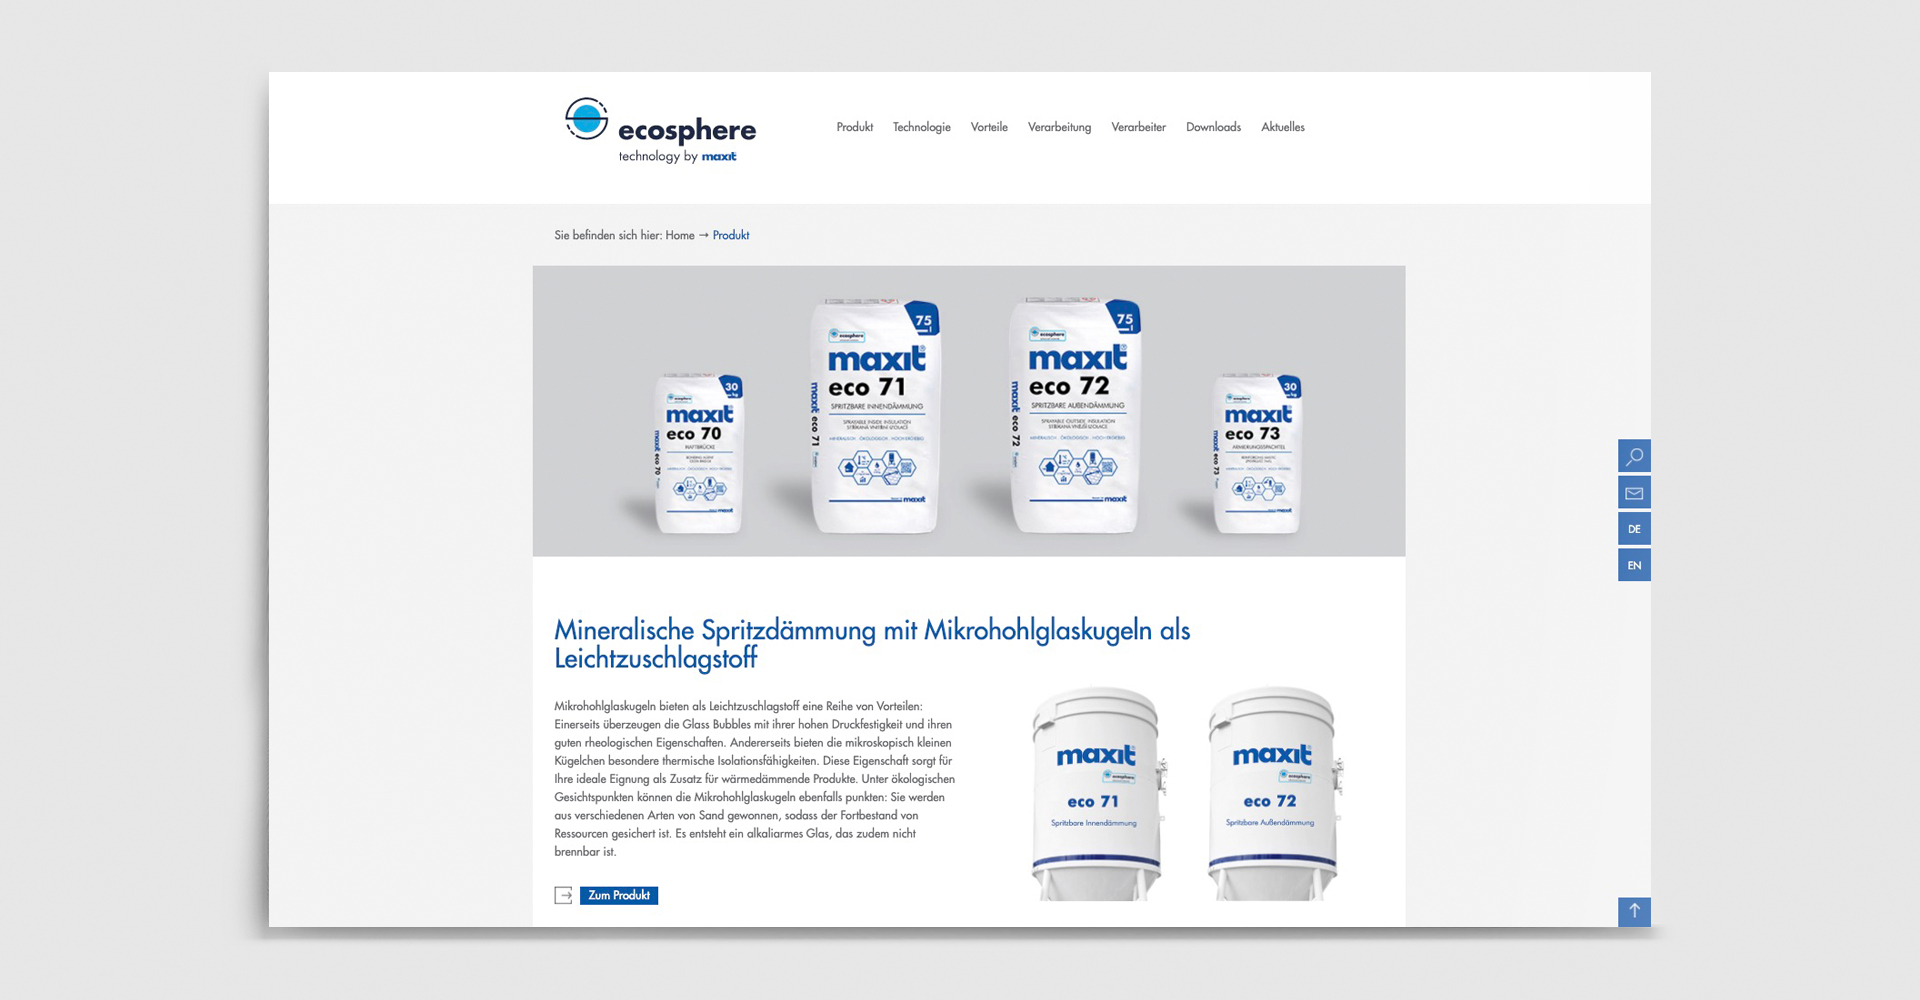 maxit ecosphere / Website